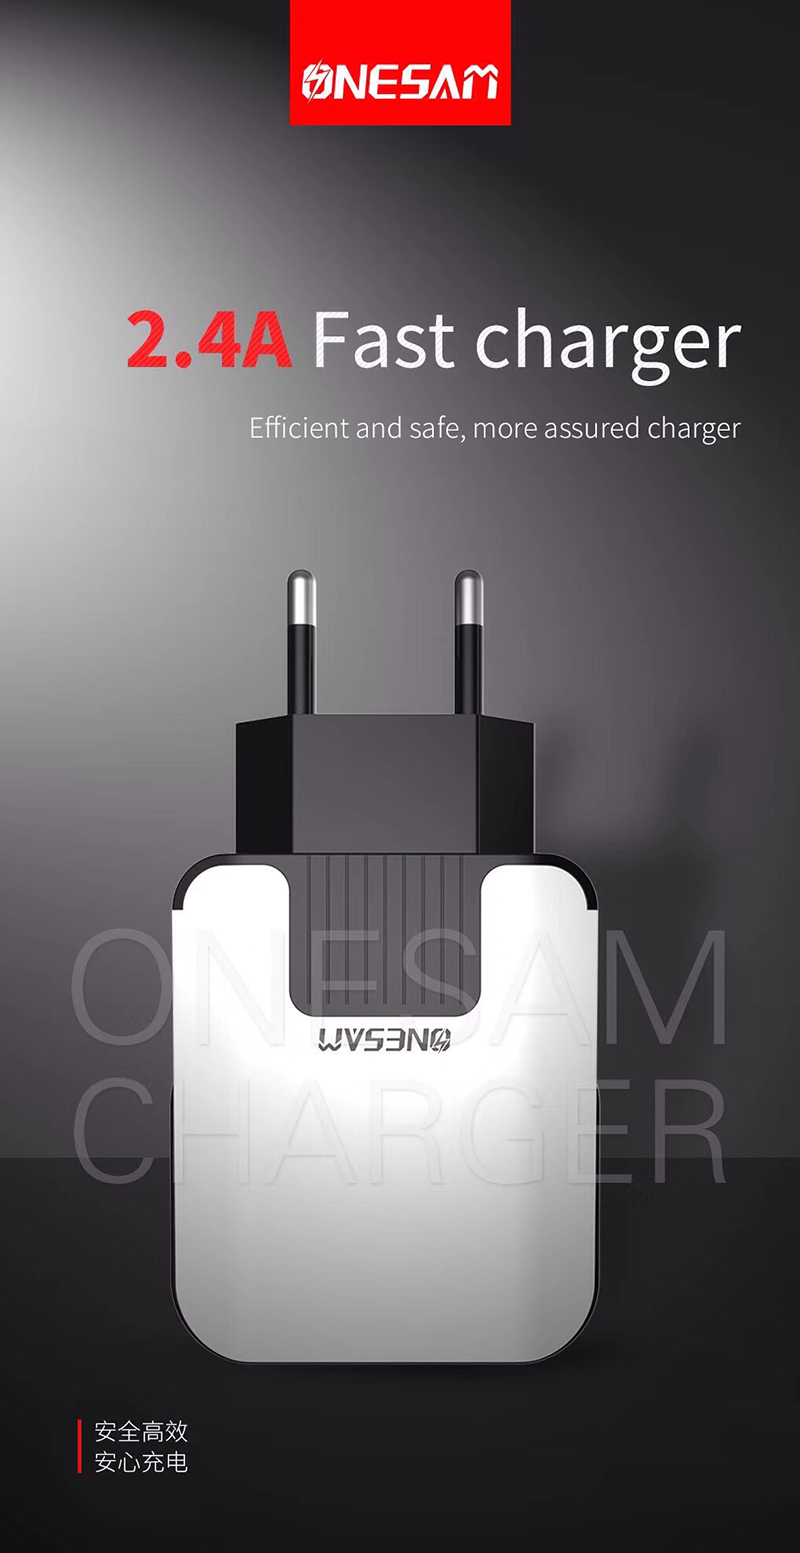 -C07 phone charger wall charger ONESAM-5